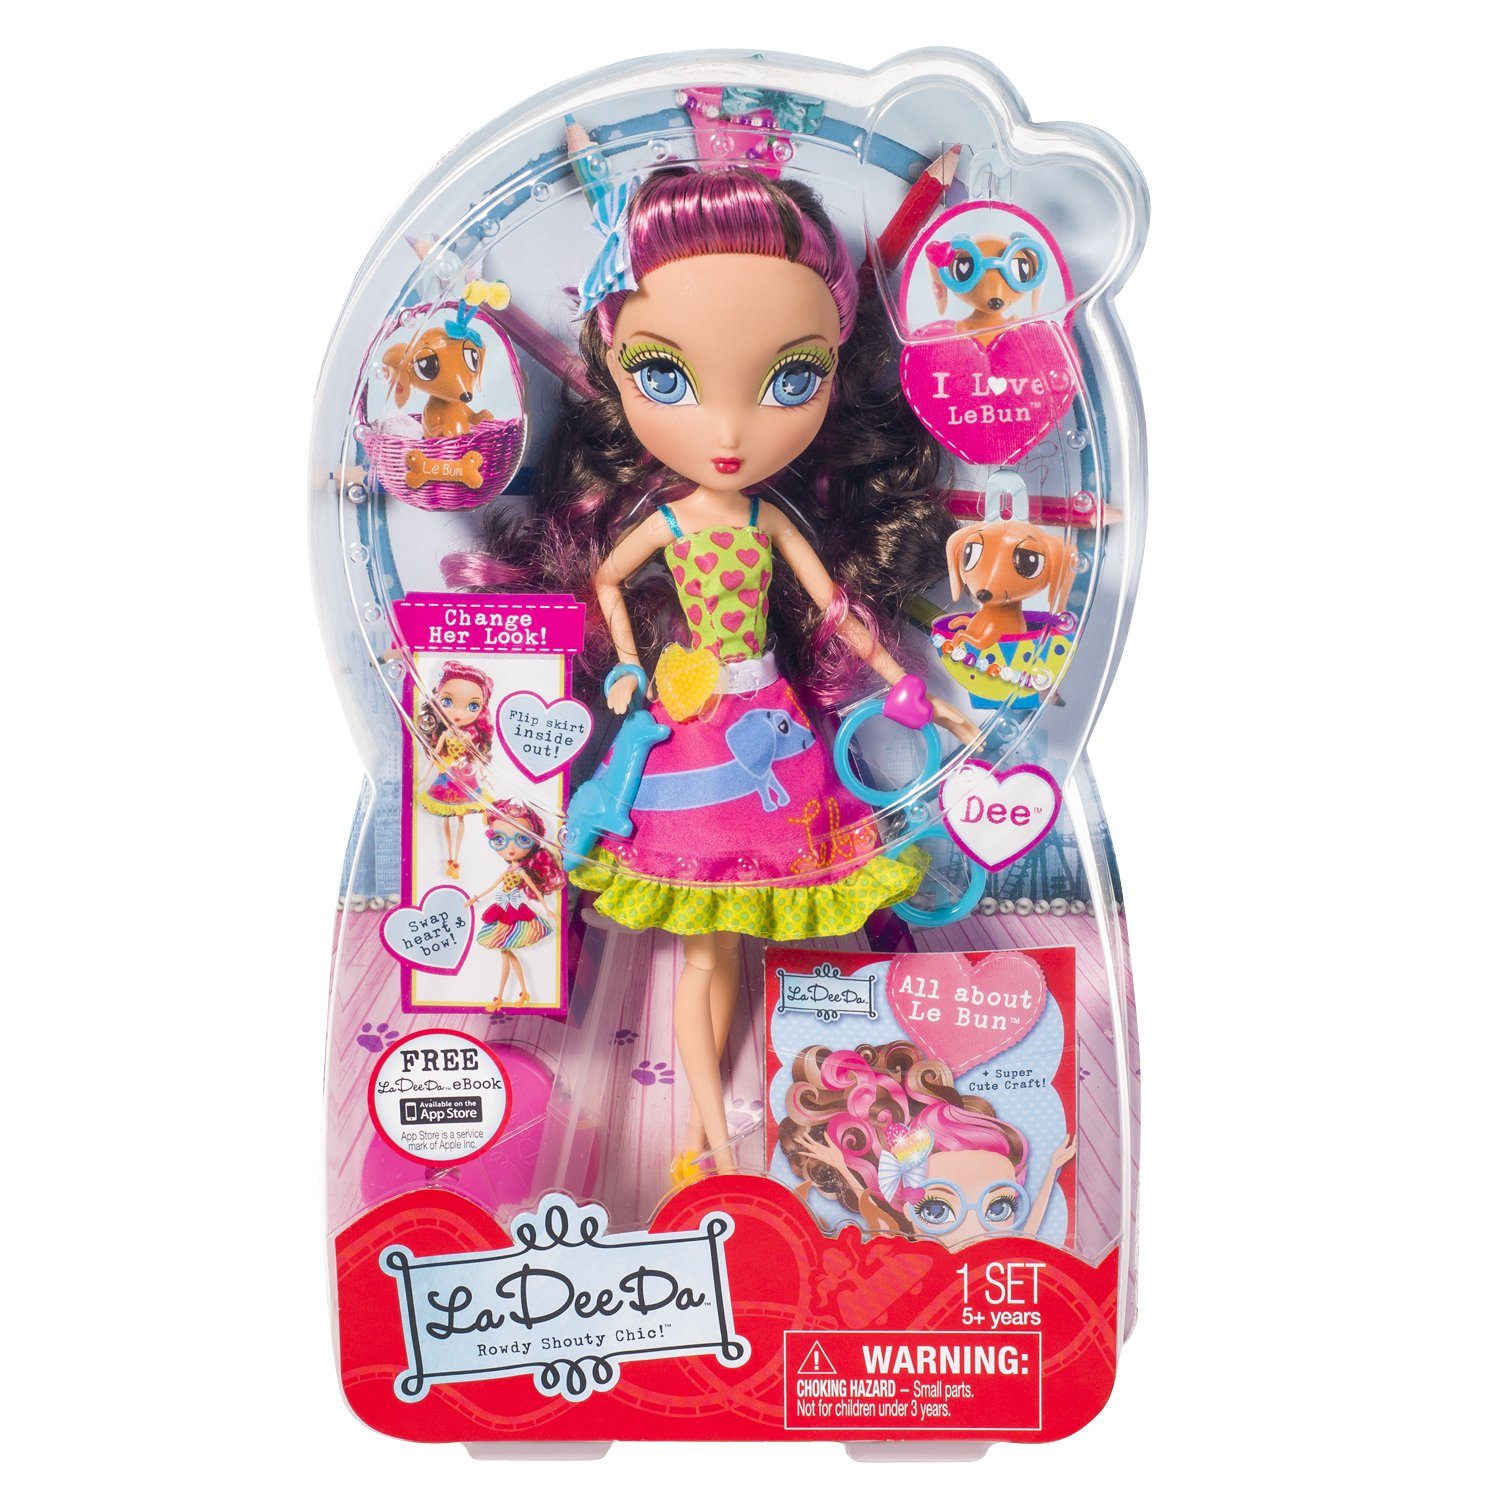 Imported From Abroad La Dee Da Ribbon Salon Playset Doll Spin Master Bambole